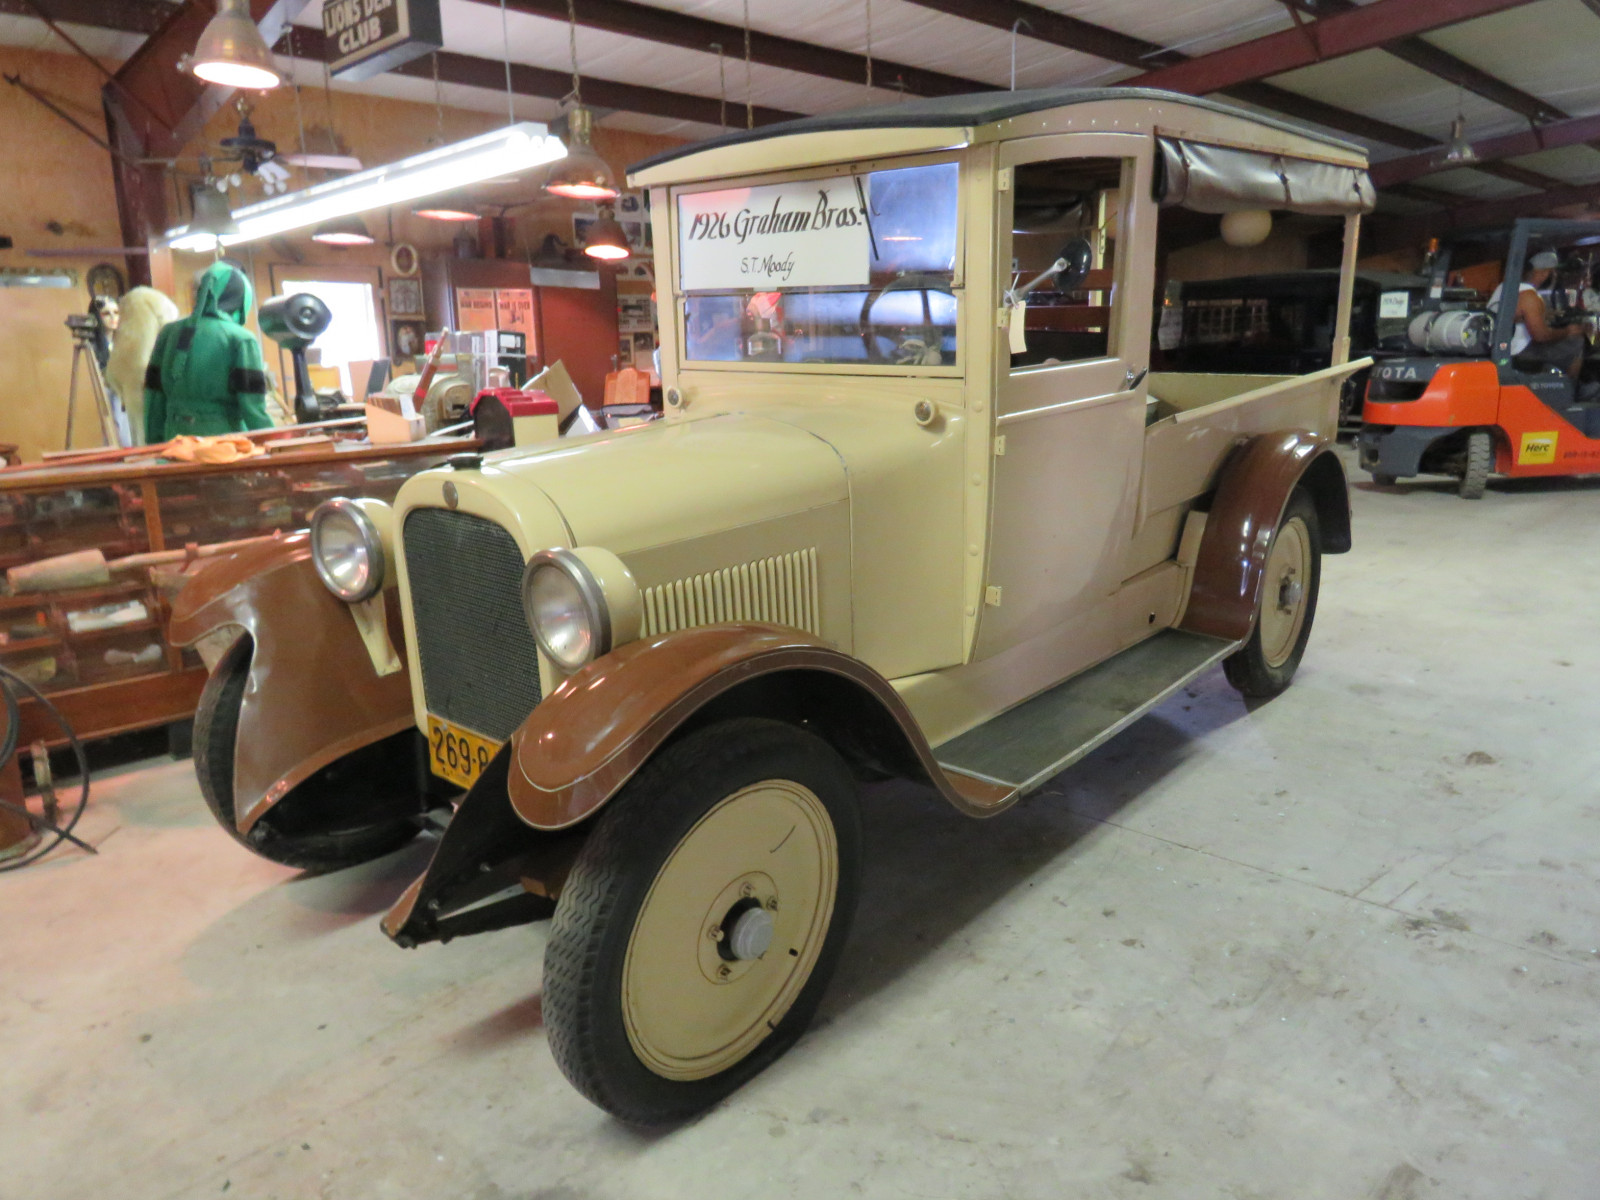 1929 dodge Brothers-Graham Canopy Express Truck - Image 1